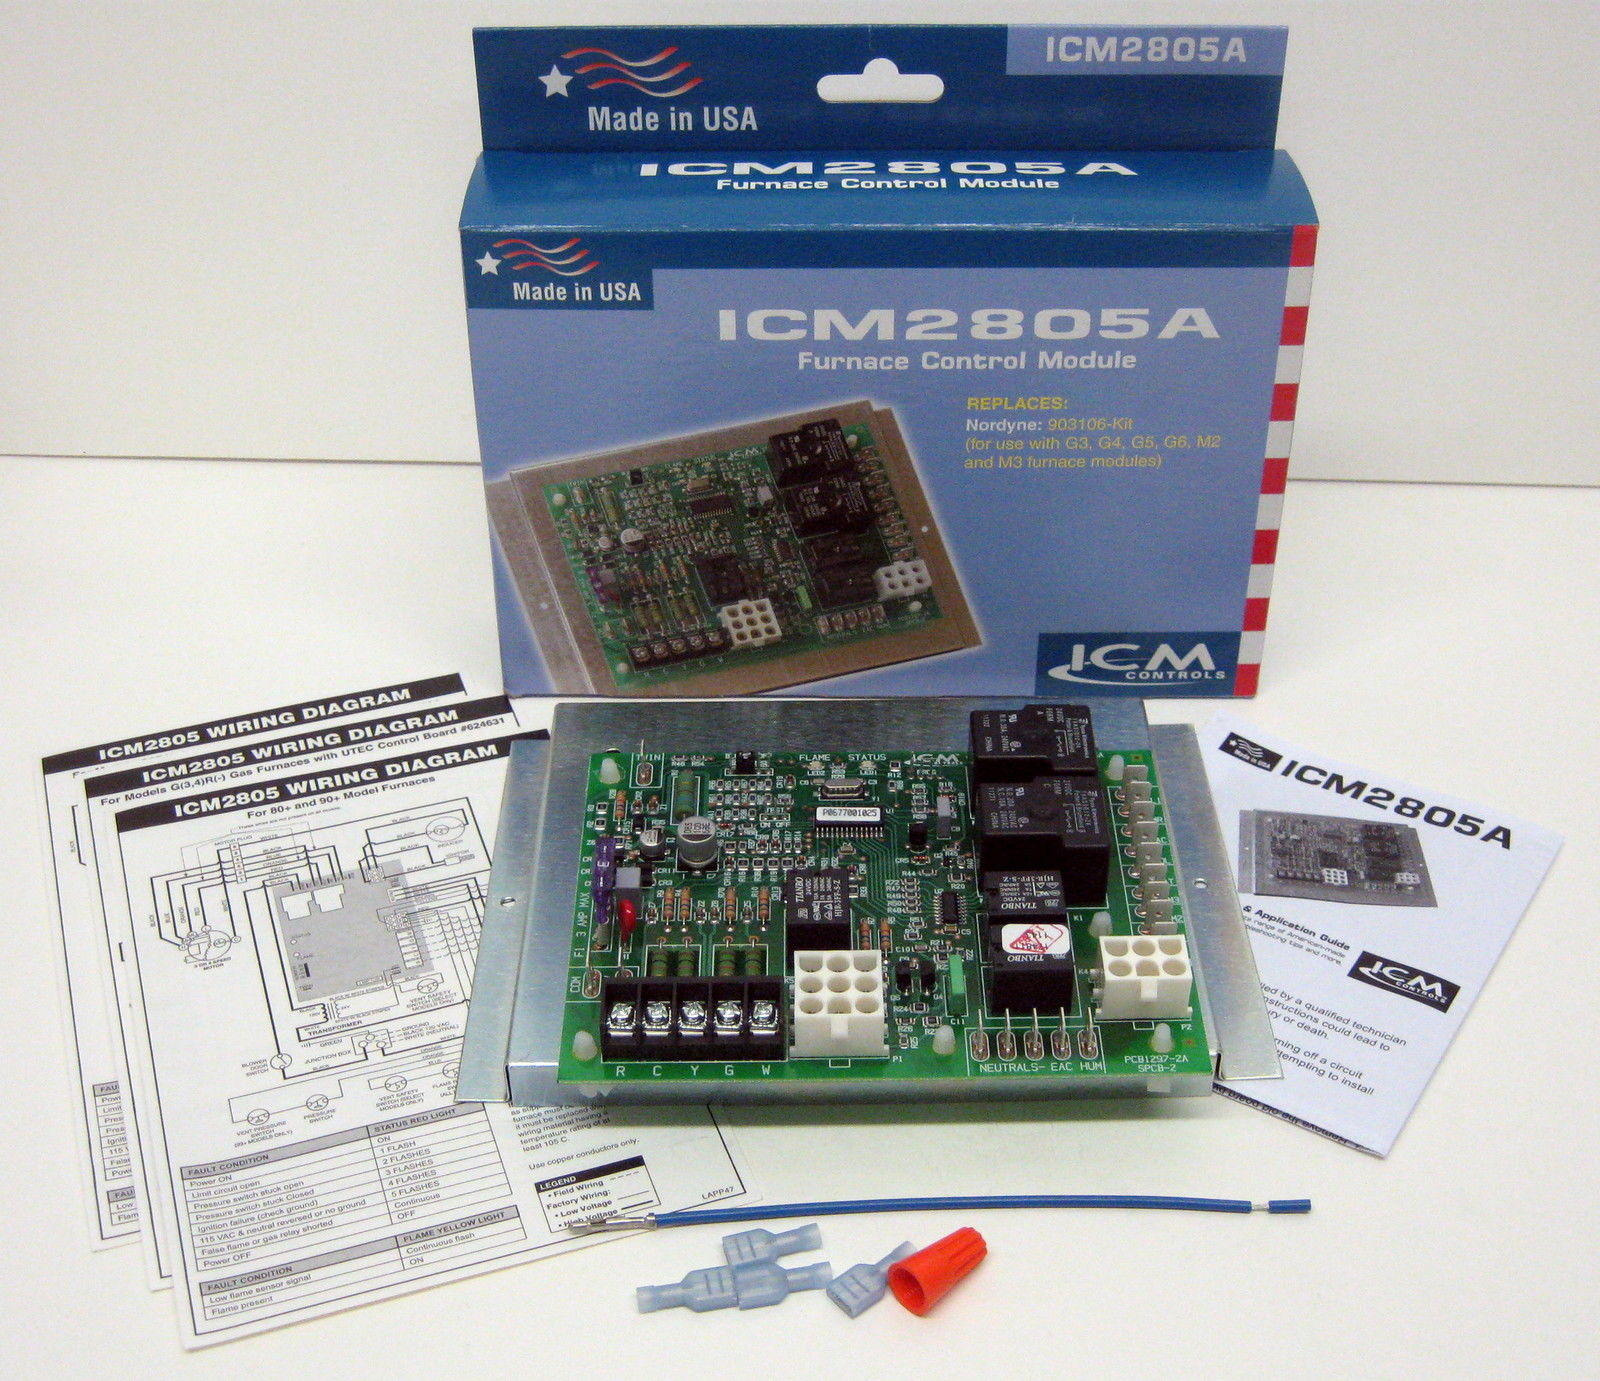 hight resolution of icm2805a icm furnace control board for nordyne intertherm miller 903106 624631 b